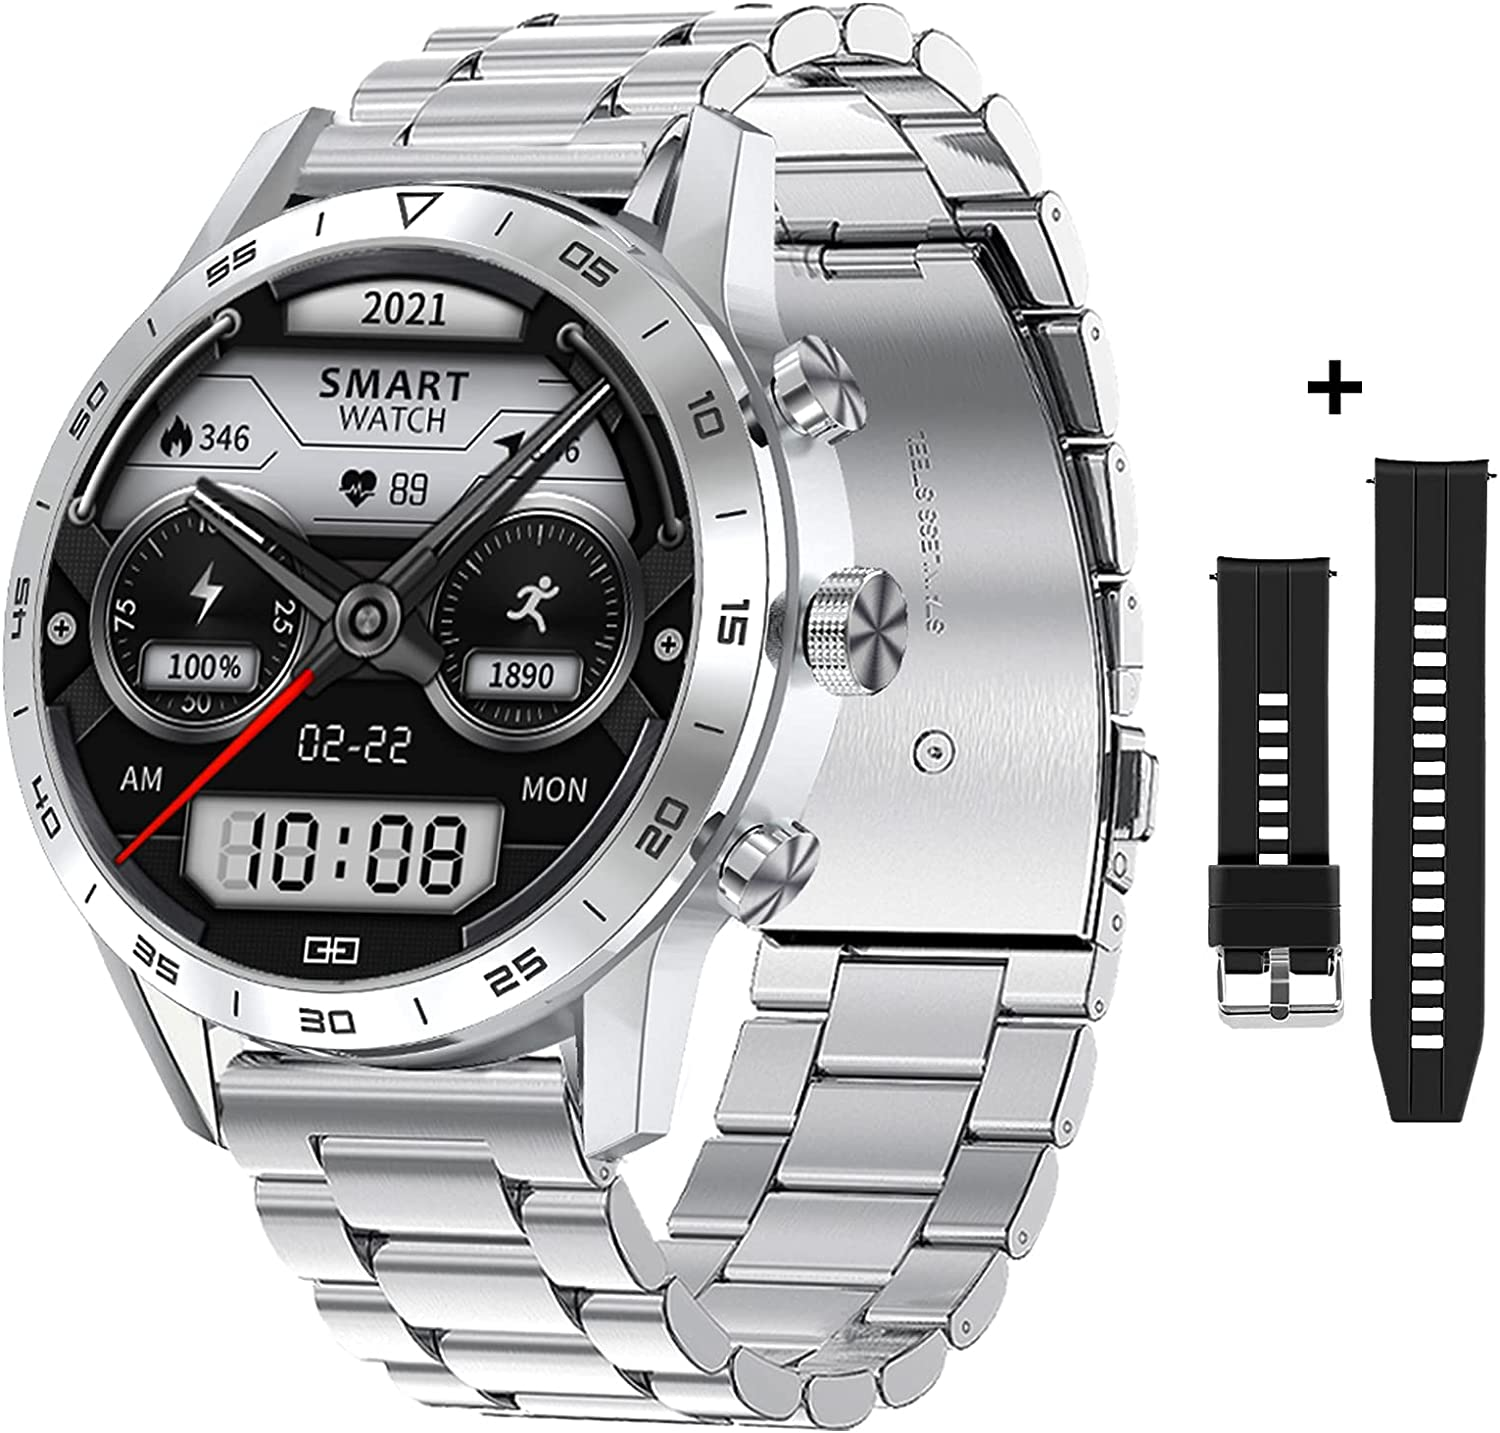 Zodvboz low-pricing Men's Limited Special Price Smart Watch Wireless Charging Voice Bluetooth Call